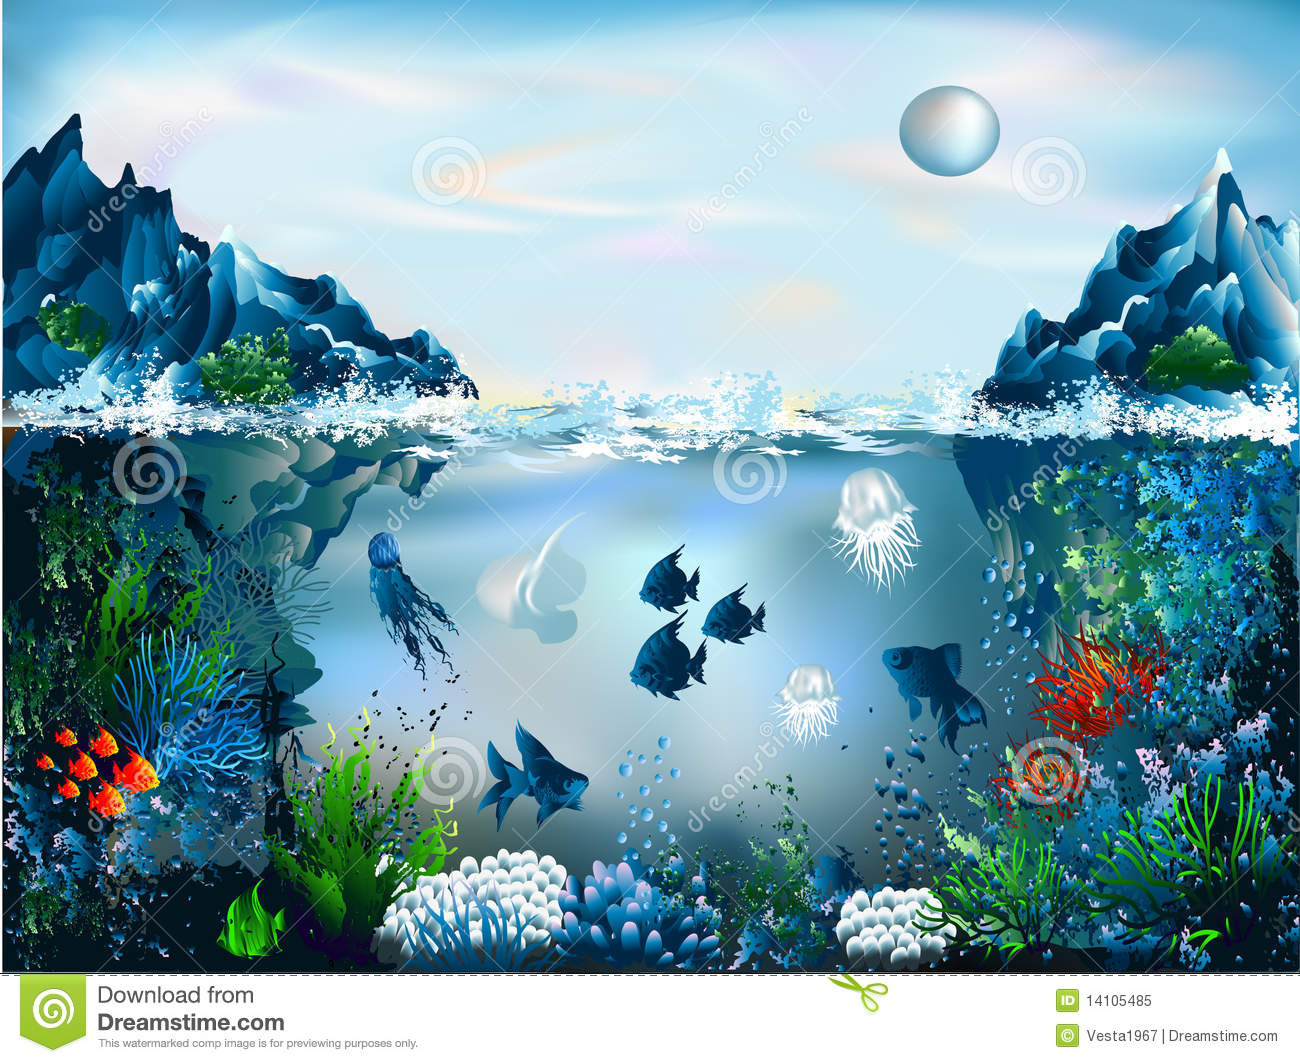 Underwater World Royalty Free Stock Photo - Image: 14105485